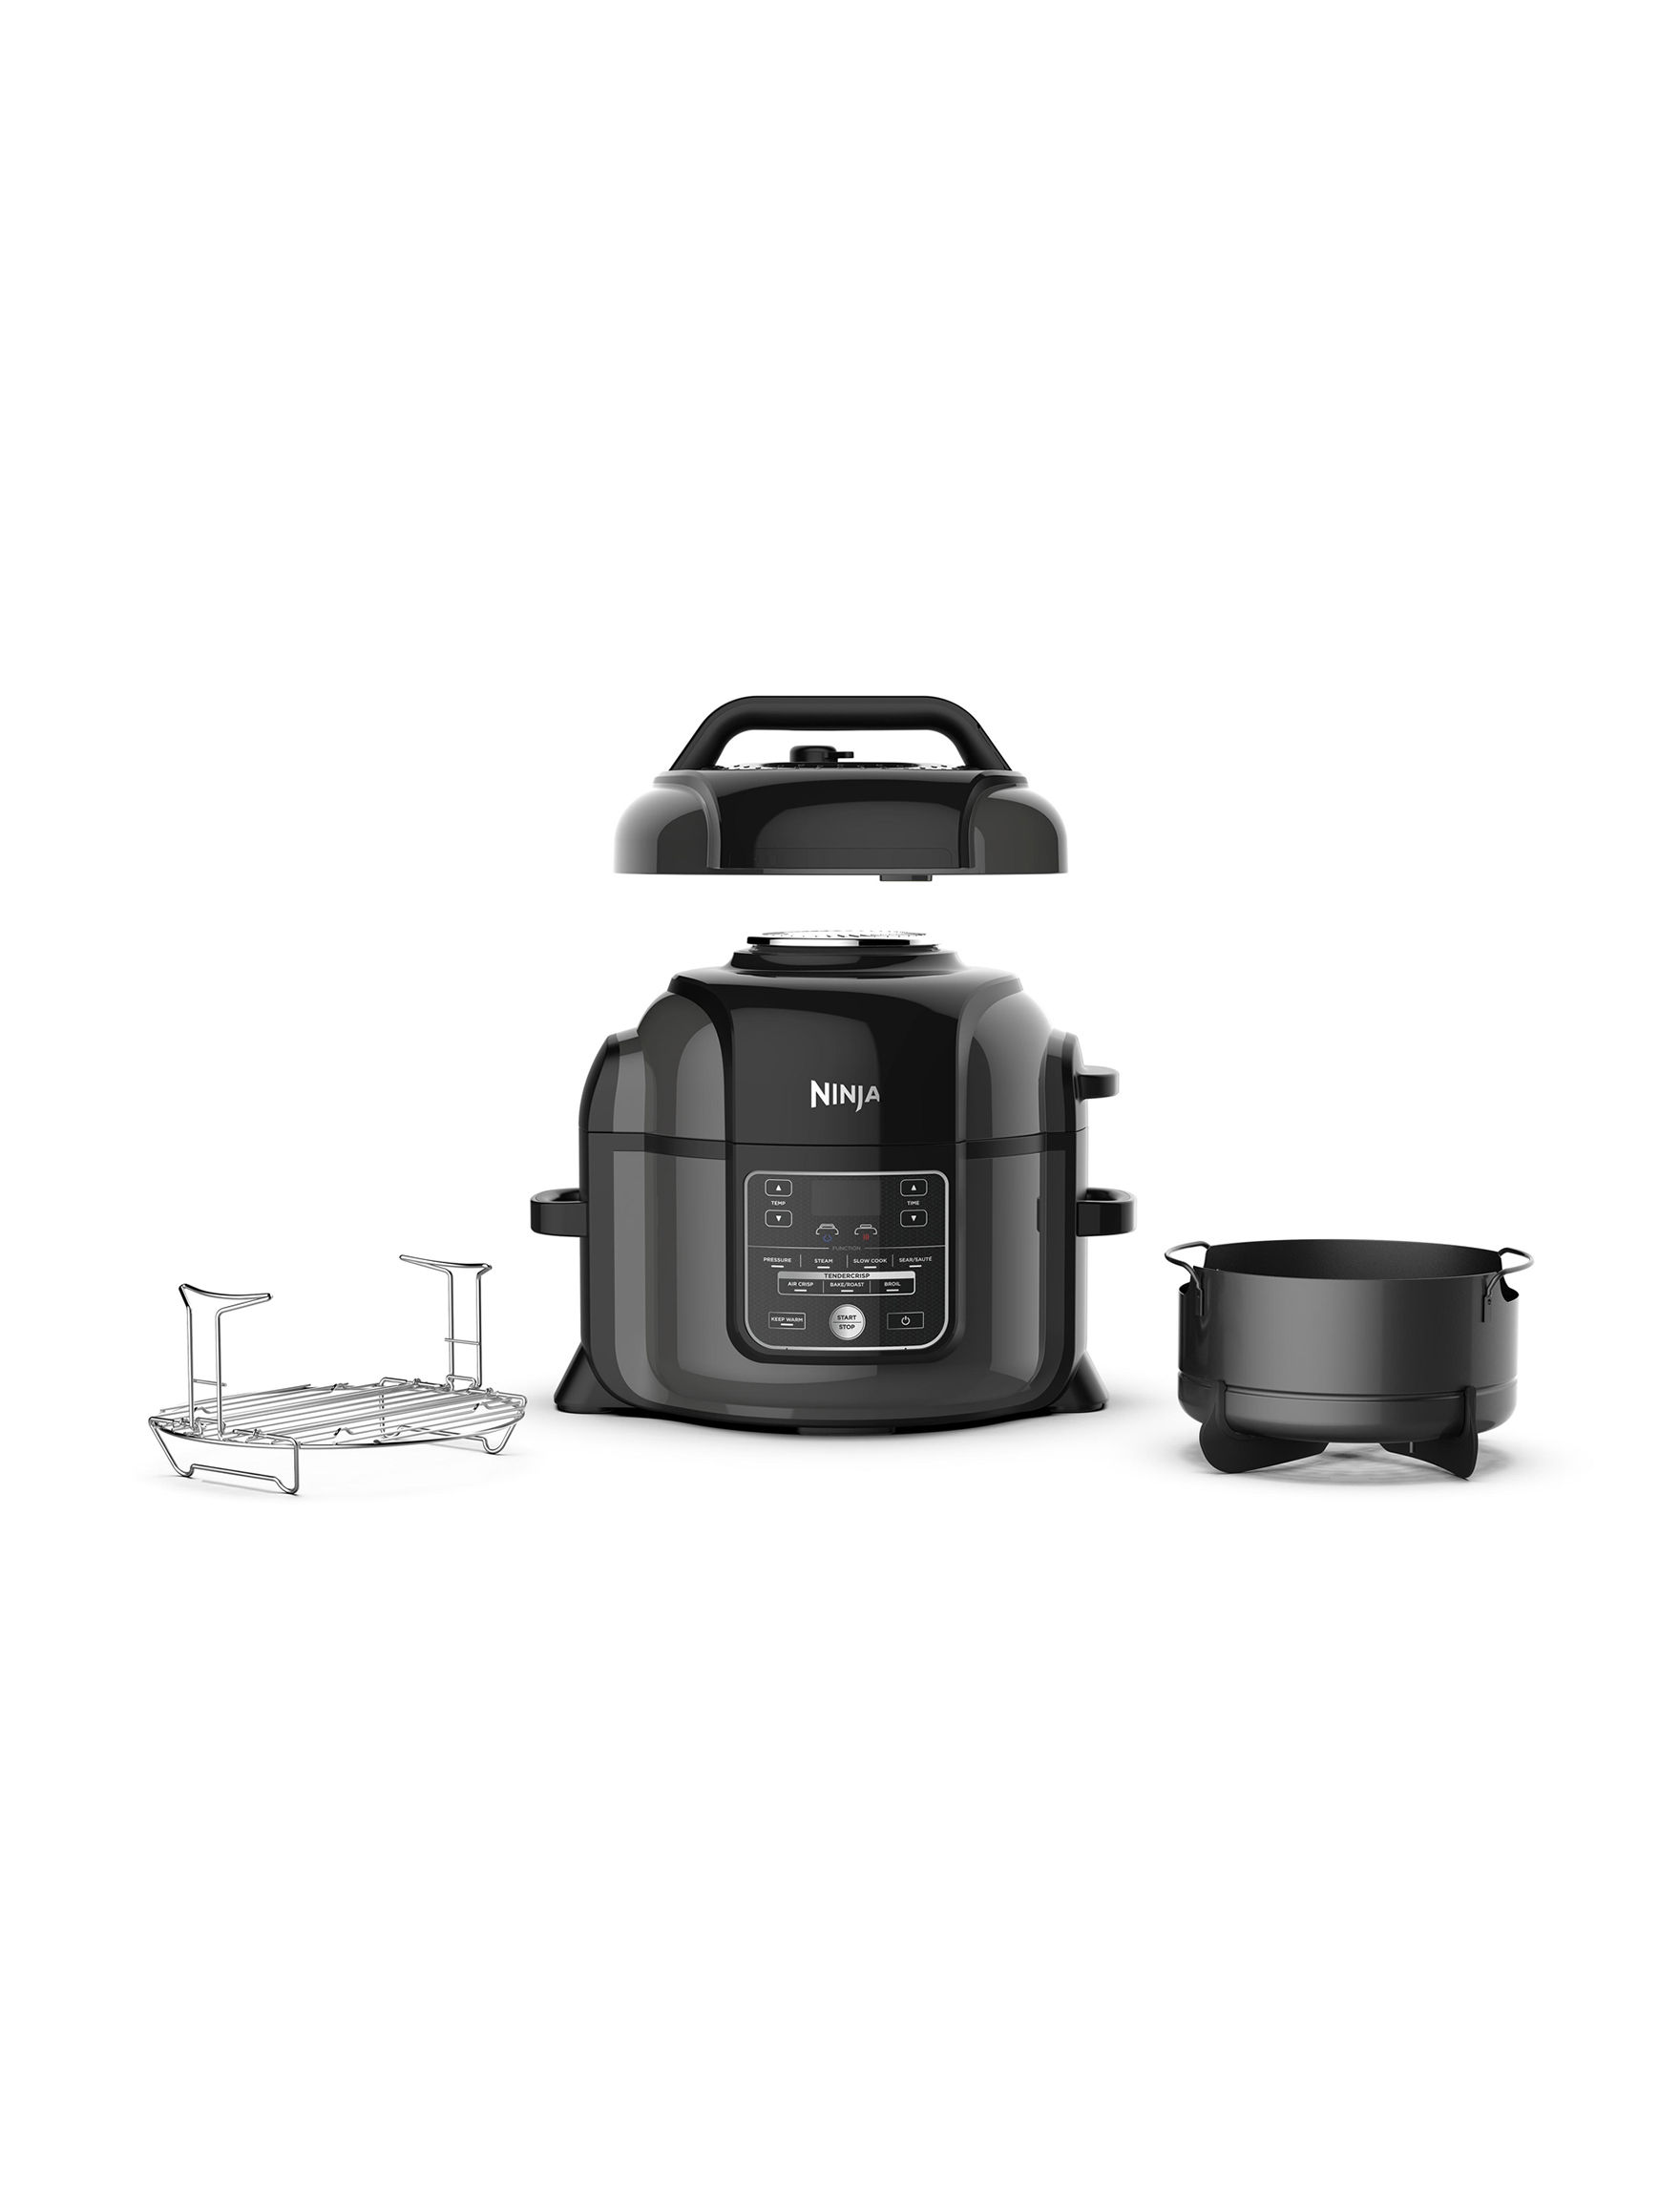 Ninja OP301 Foodi The Pressure Cooker that Crisps - Black - Ninja